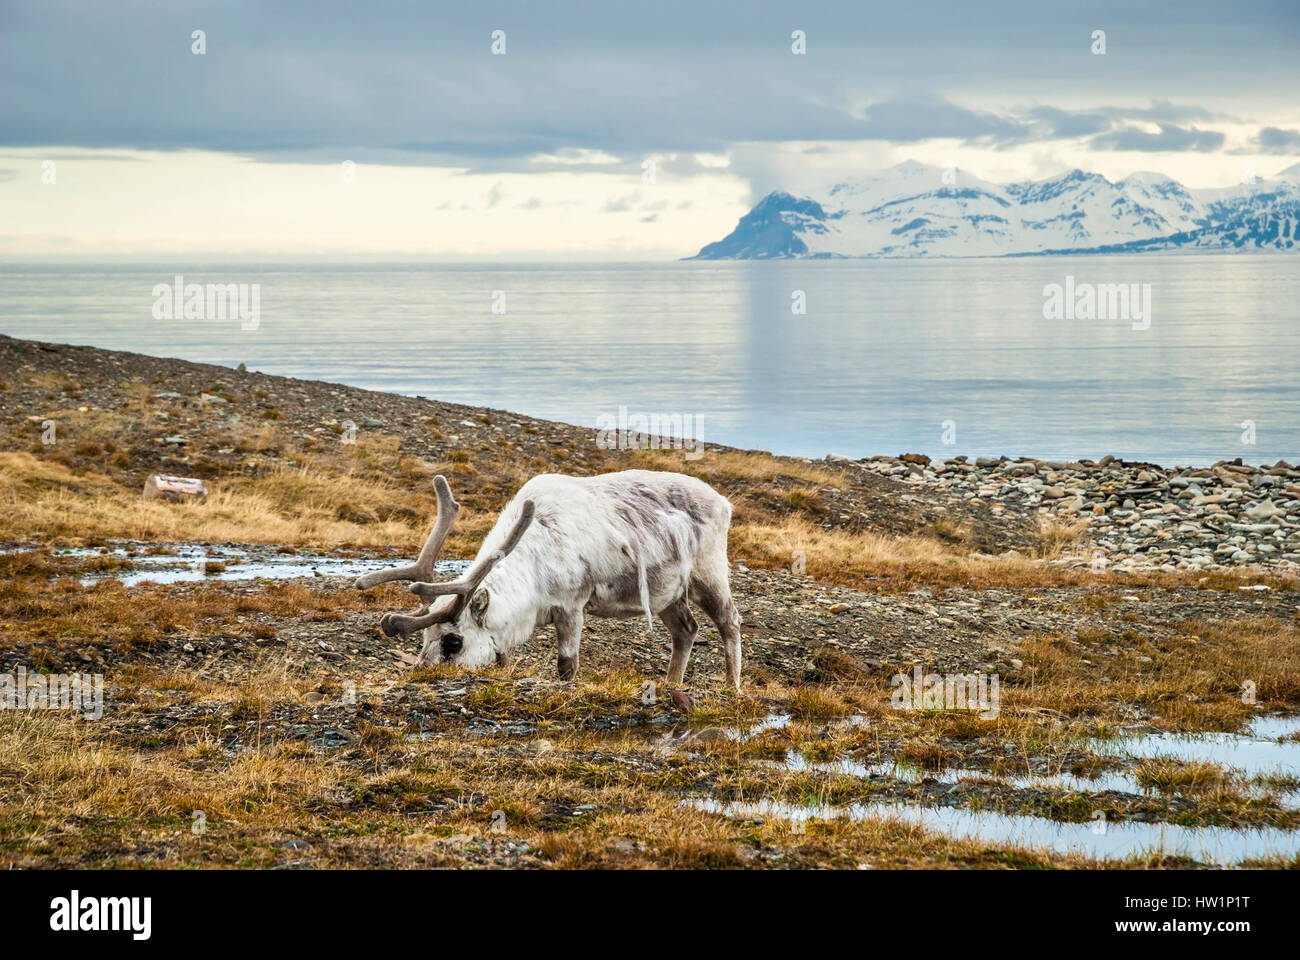 Reindeer eating grass infront of the sea and mountains in slow in Svalbard, Arctic Stock Photo